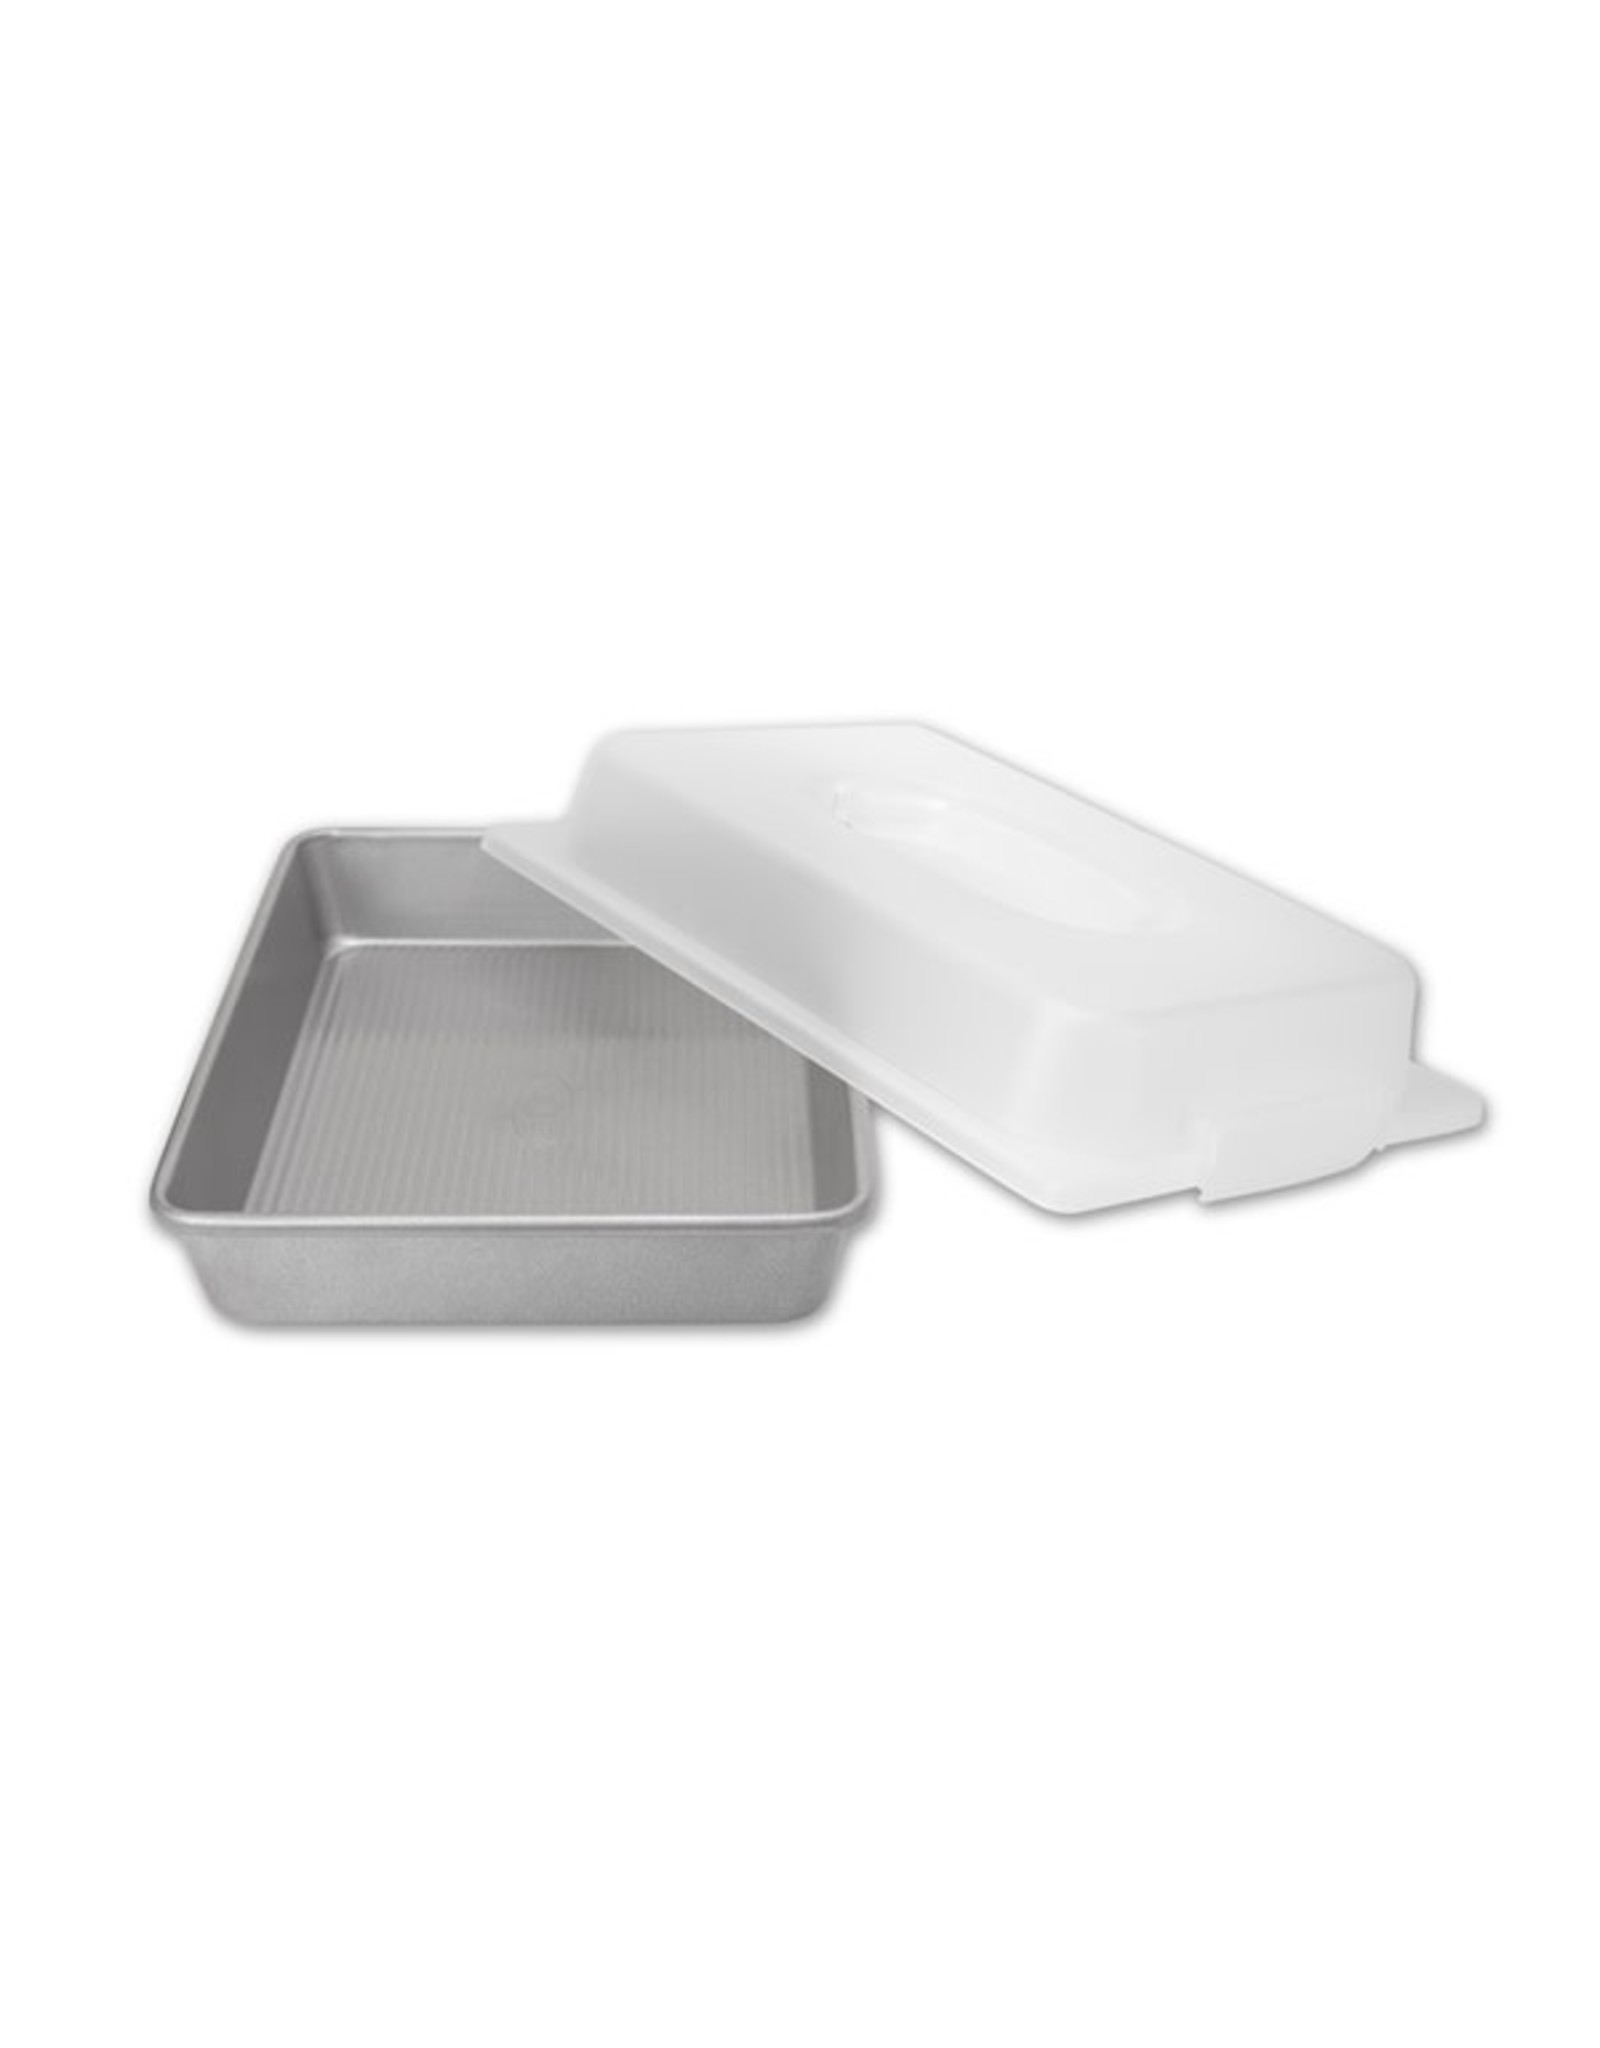 USA Pan Rectangle Cake Pan w/Lid, 9x13